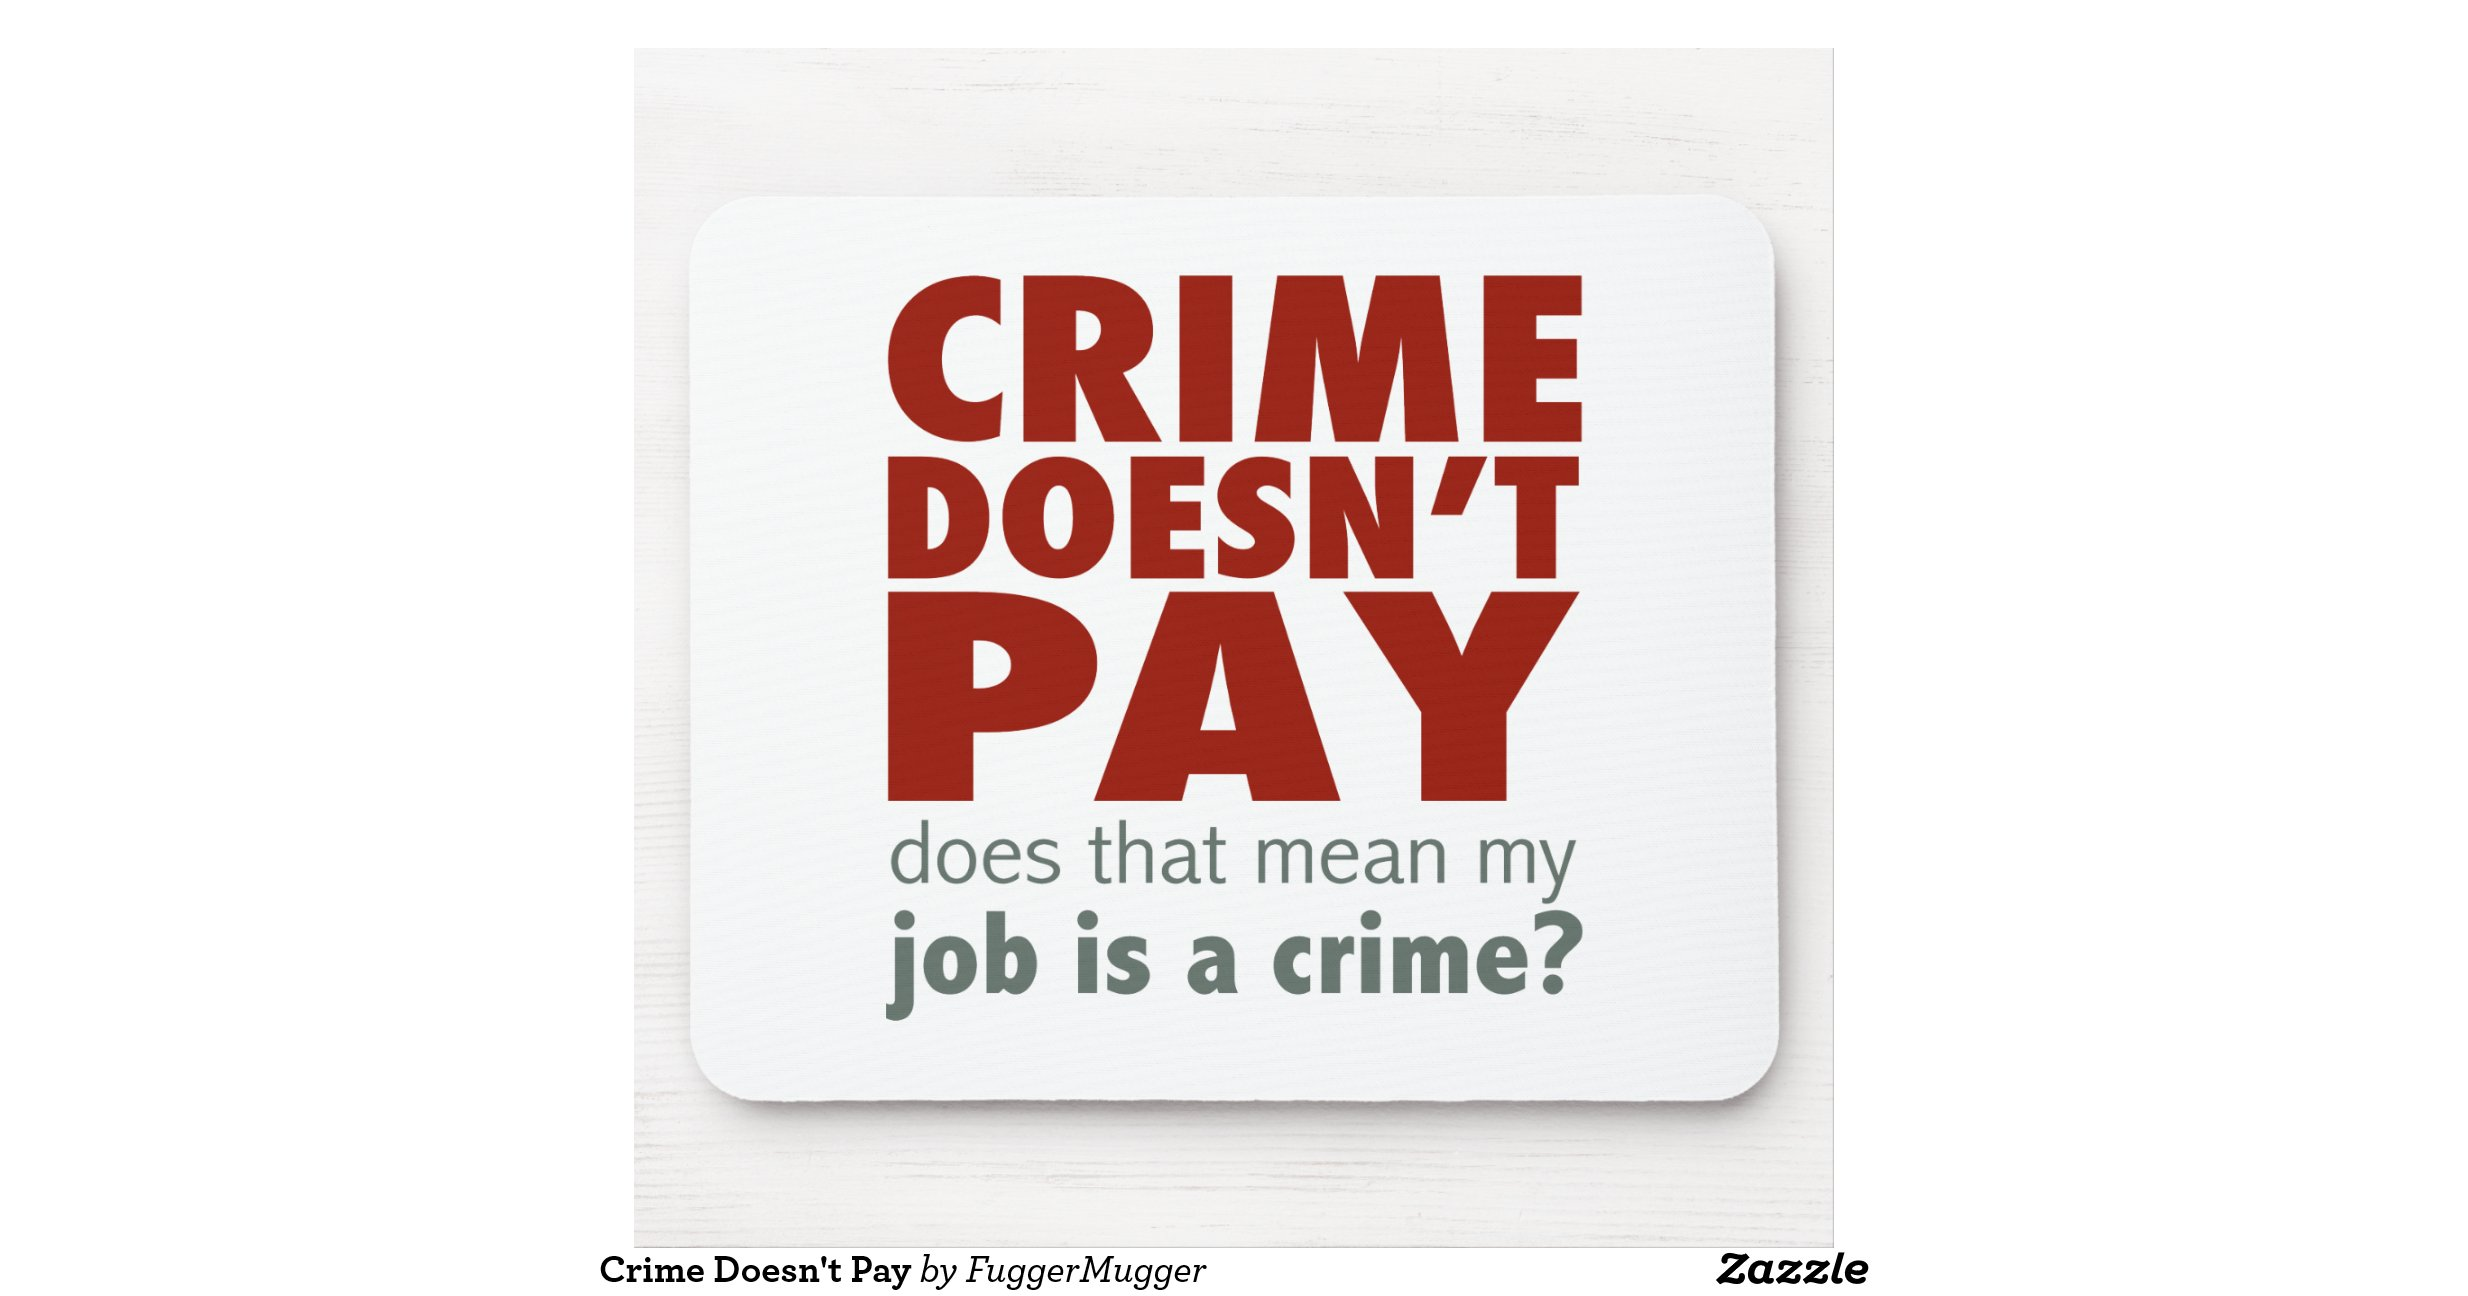 Essay crime doesn't pay